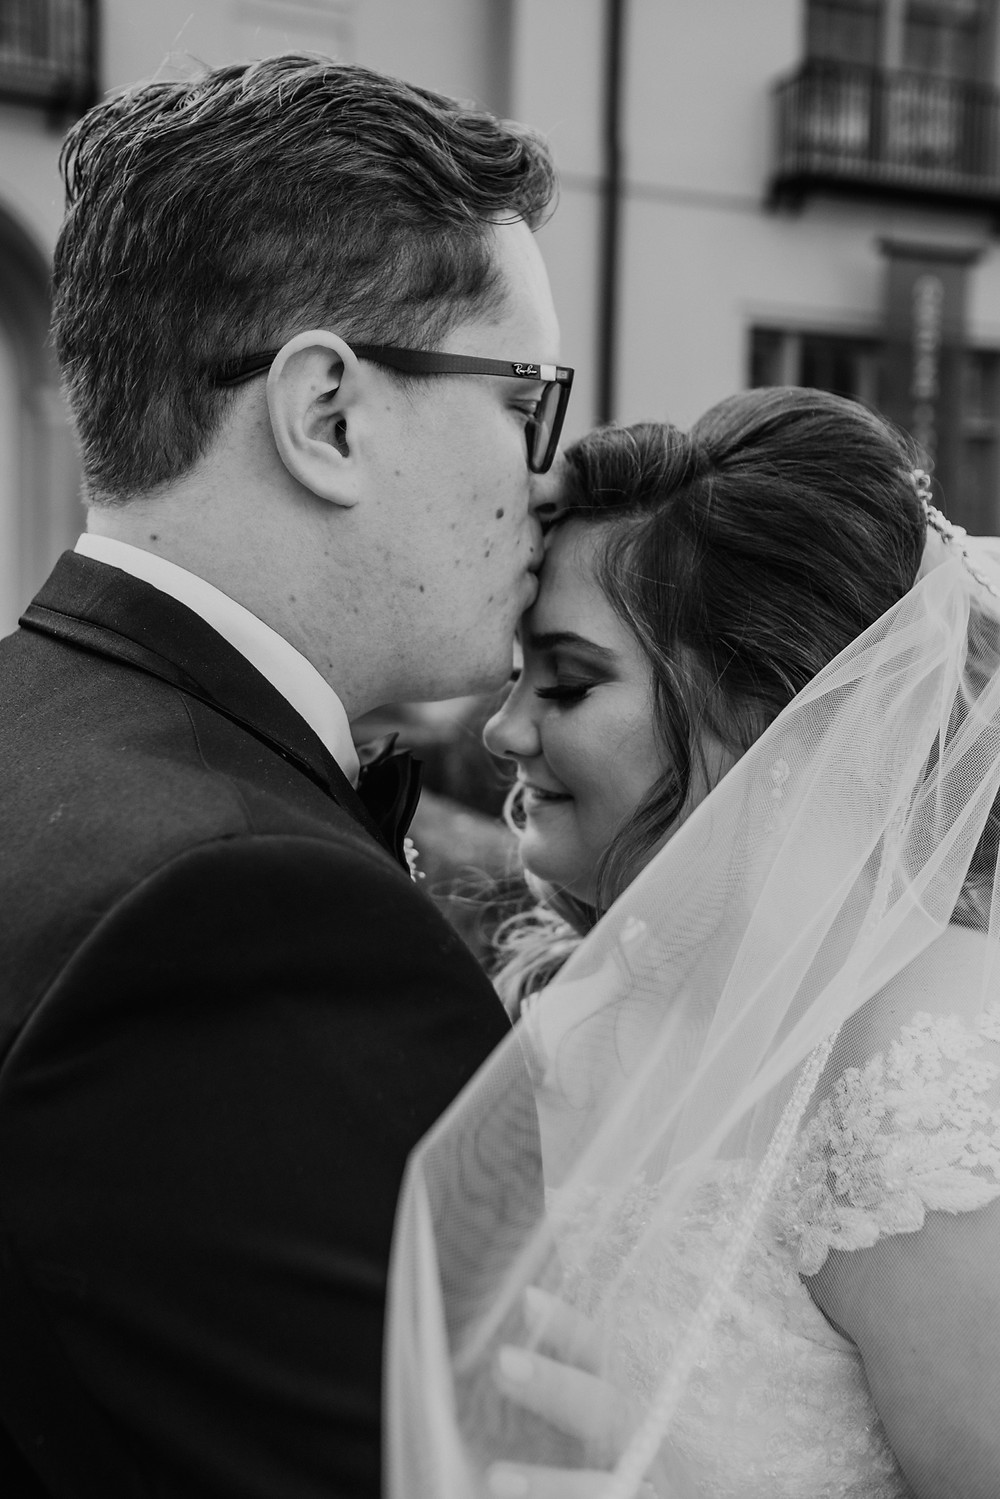 Black and white photo of bride and groom at Metro Detroit wedding. Photographed by Nicole Leanne Photography.